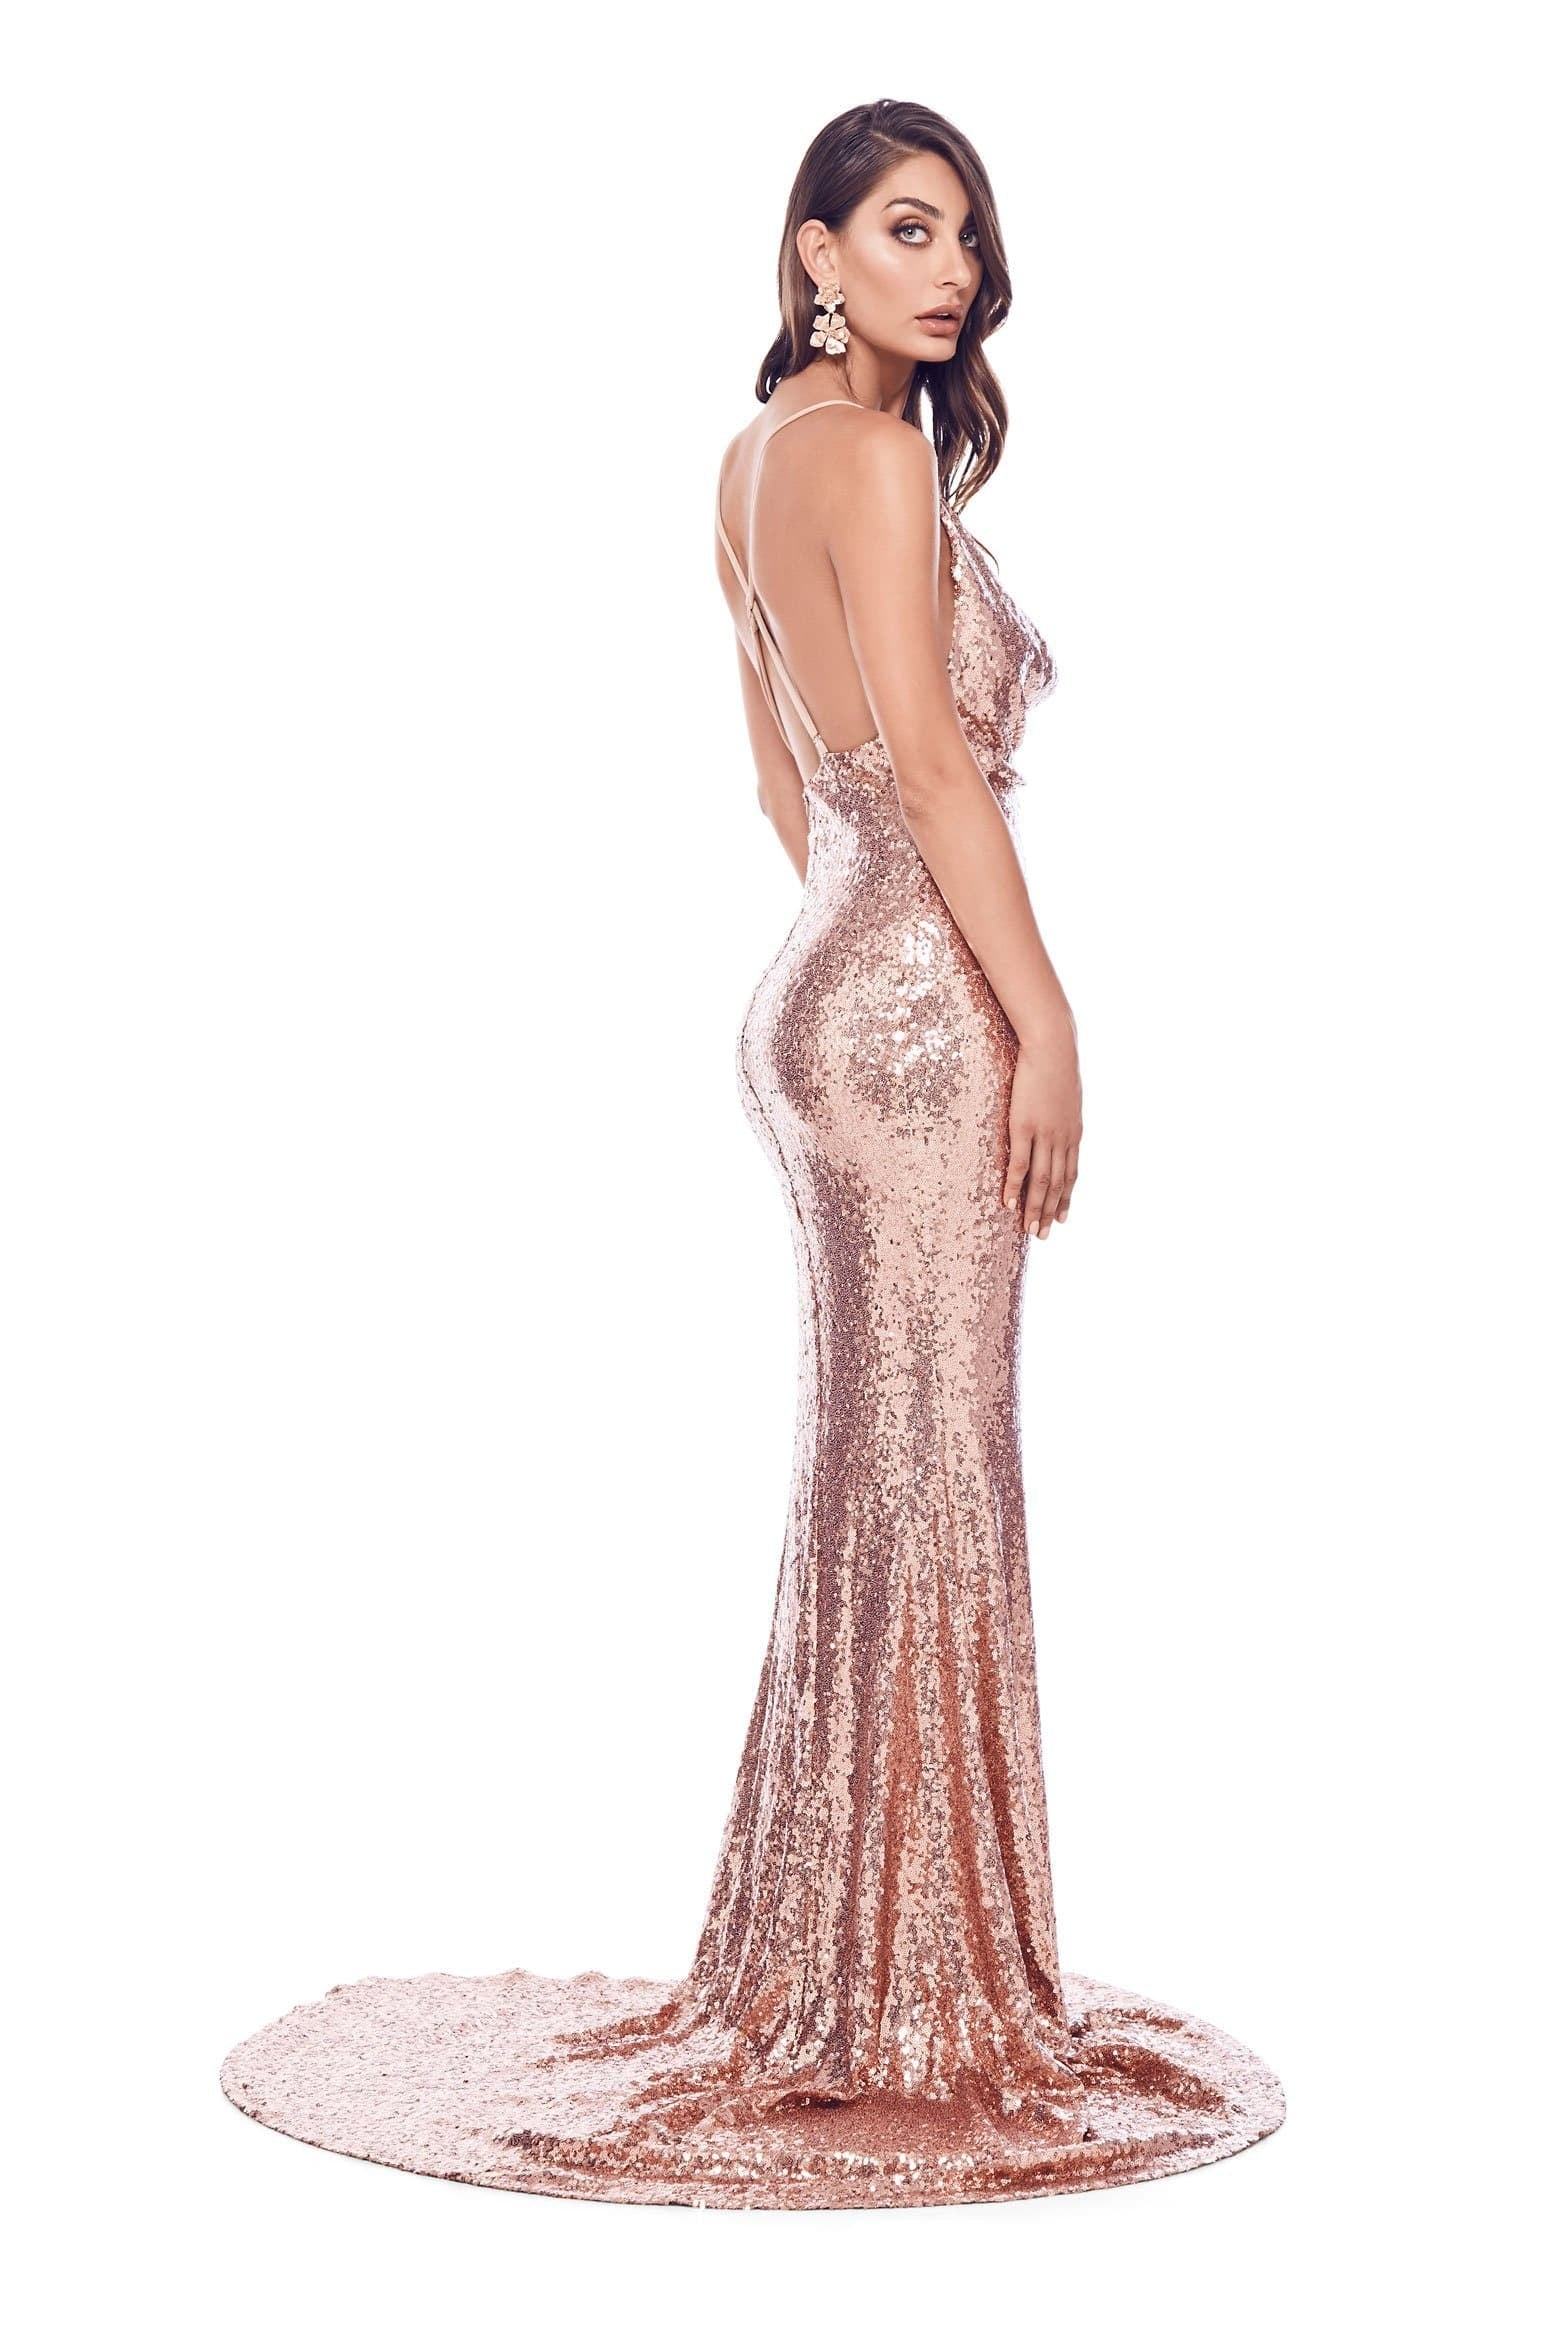 Andriana - Rose Gold Sequin Gown with Side Slit & Cowl Neckline